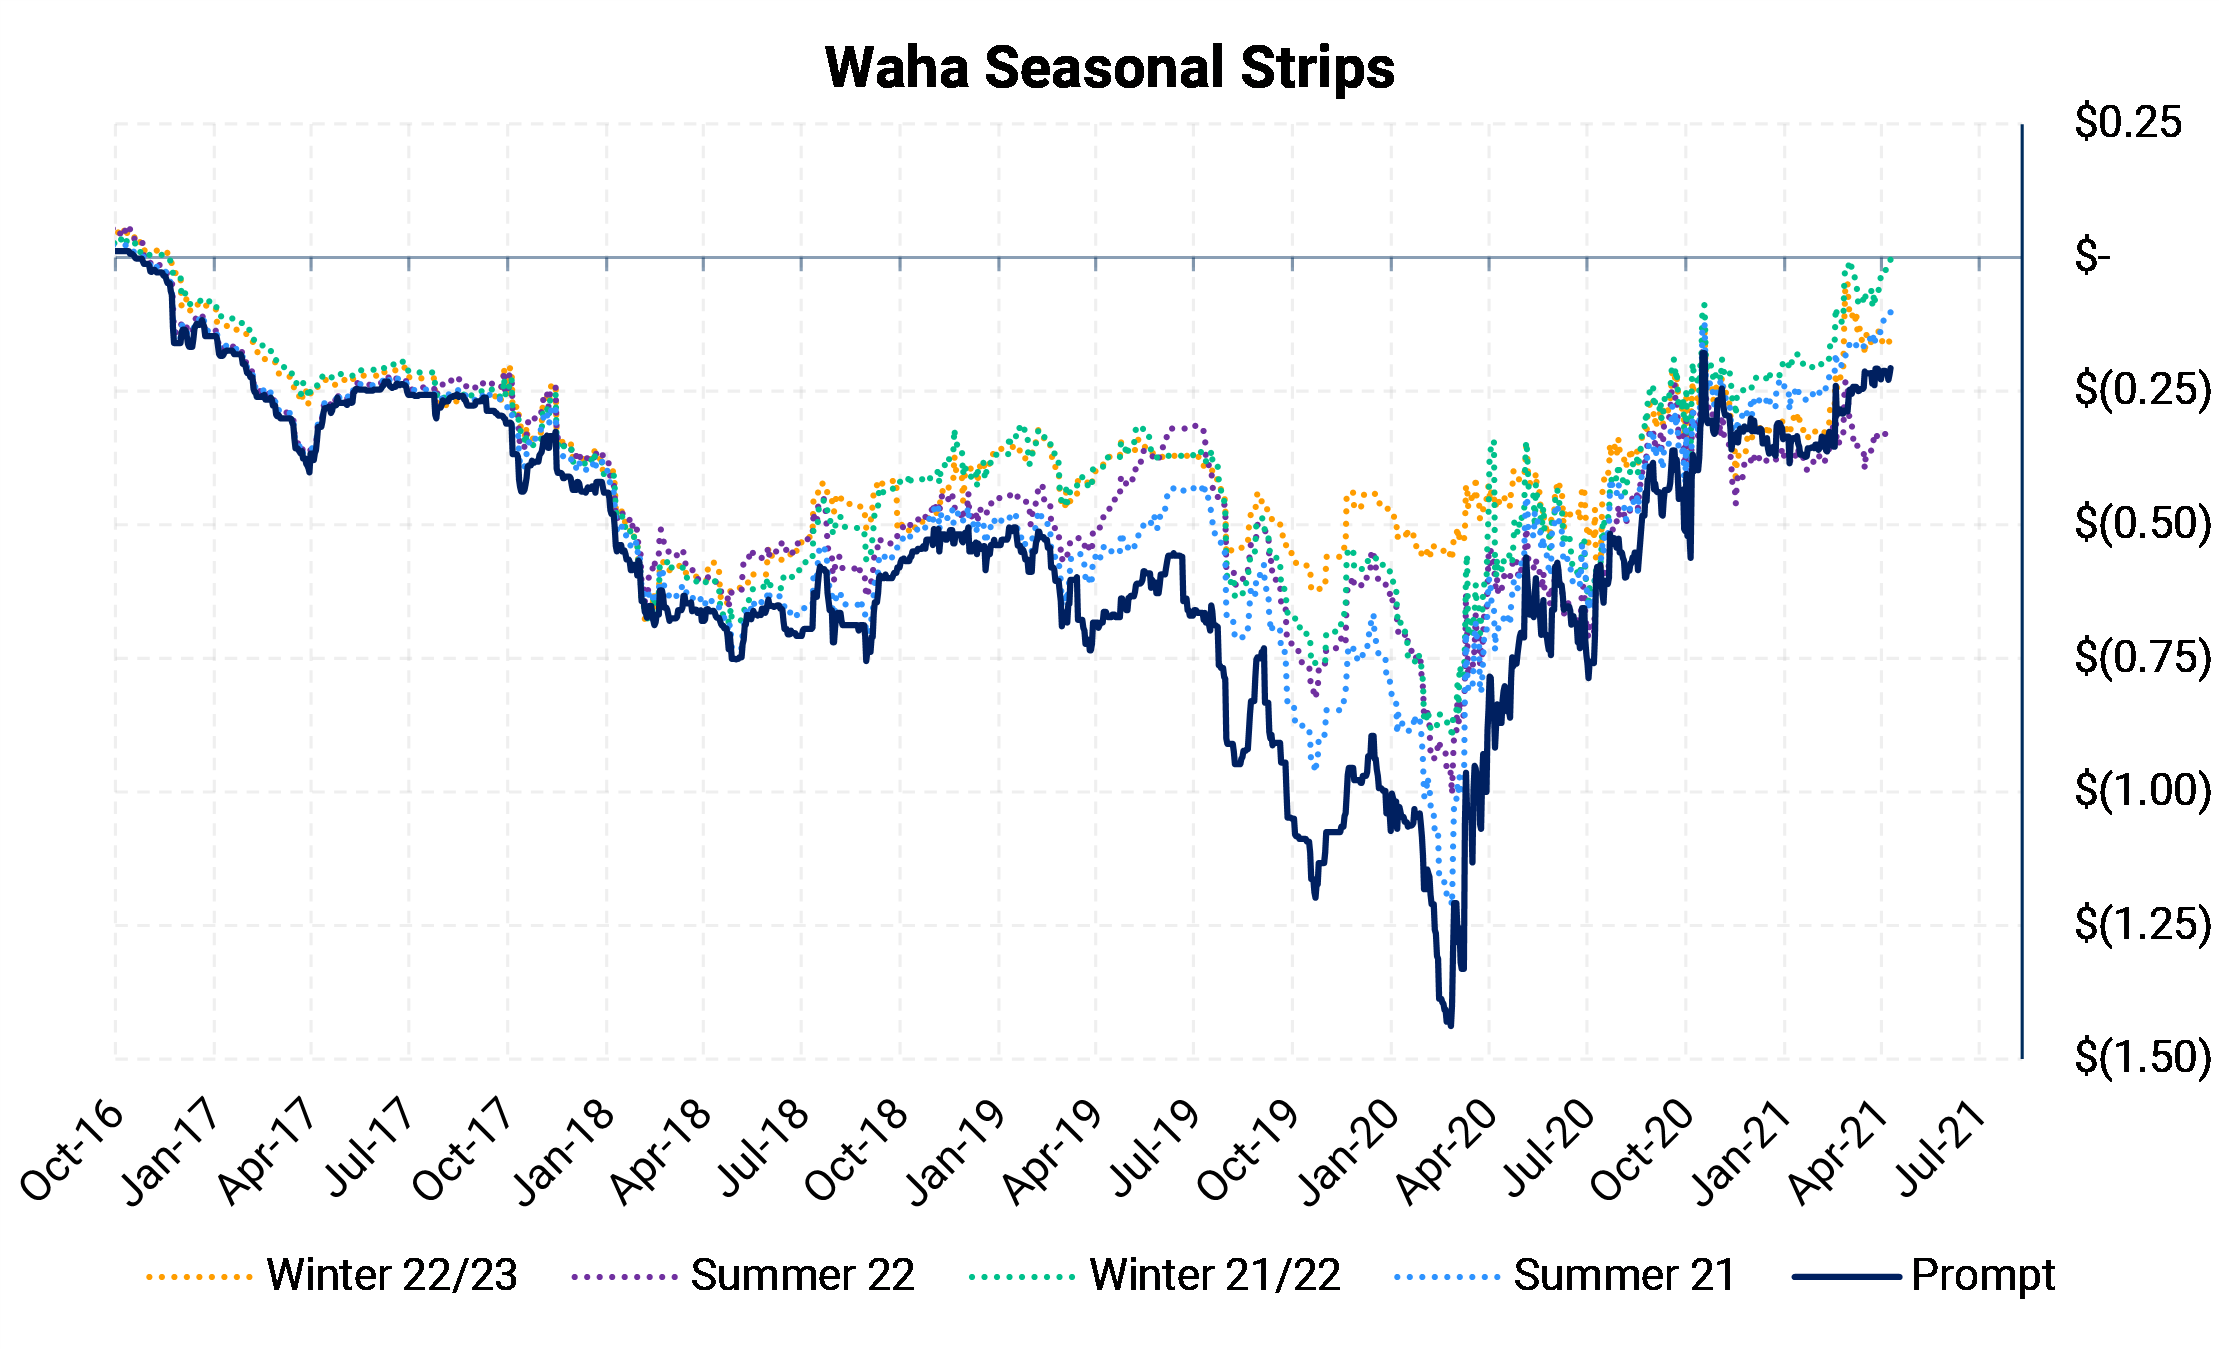 WAHA Seasonal Strips